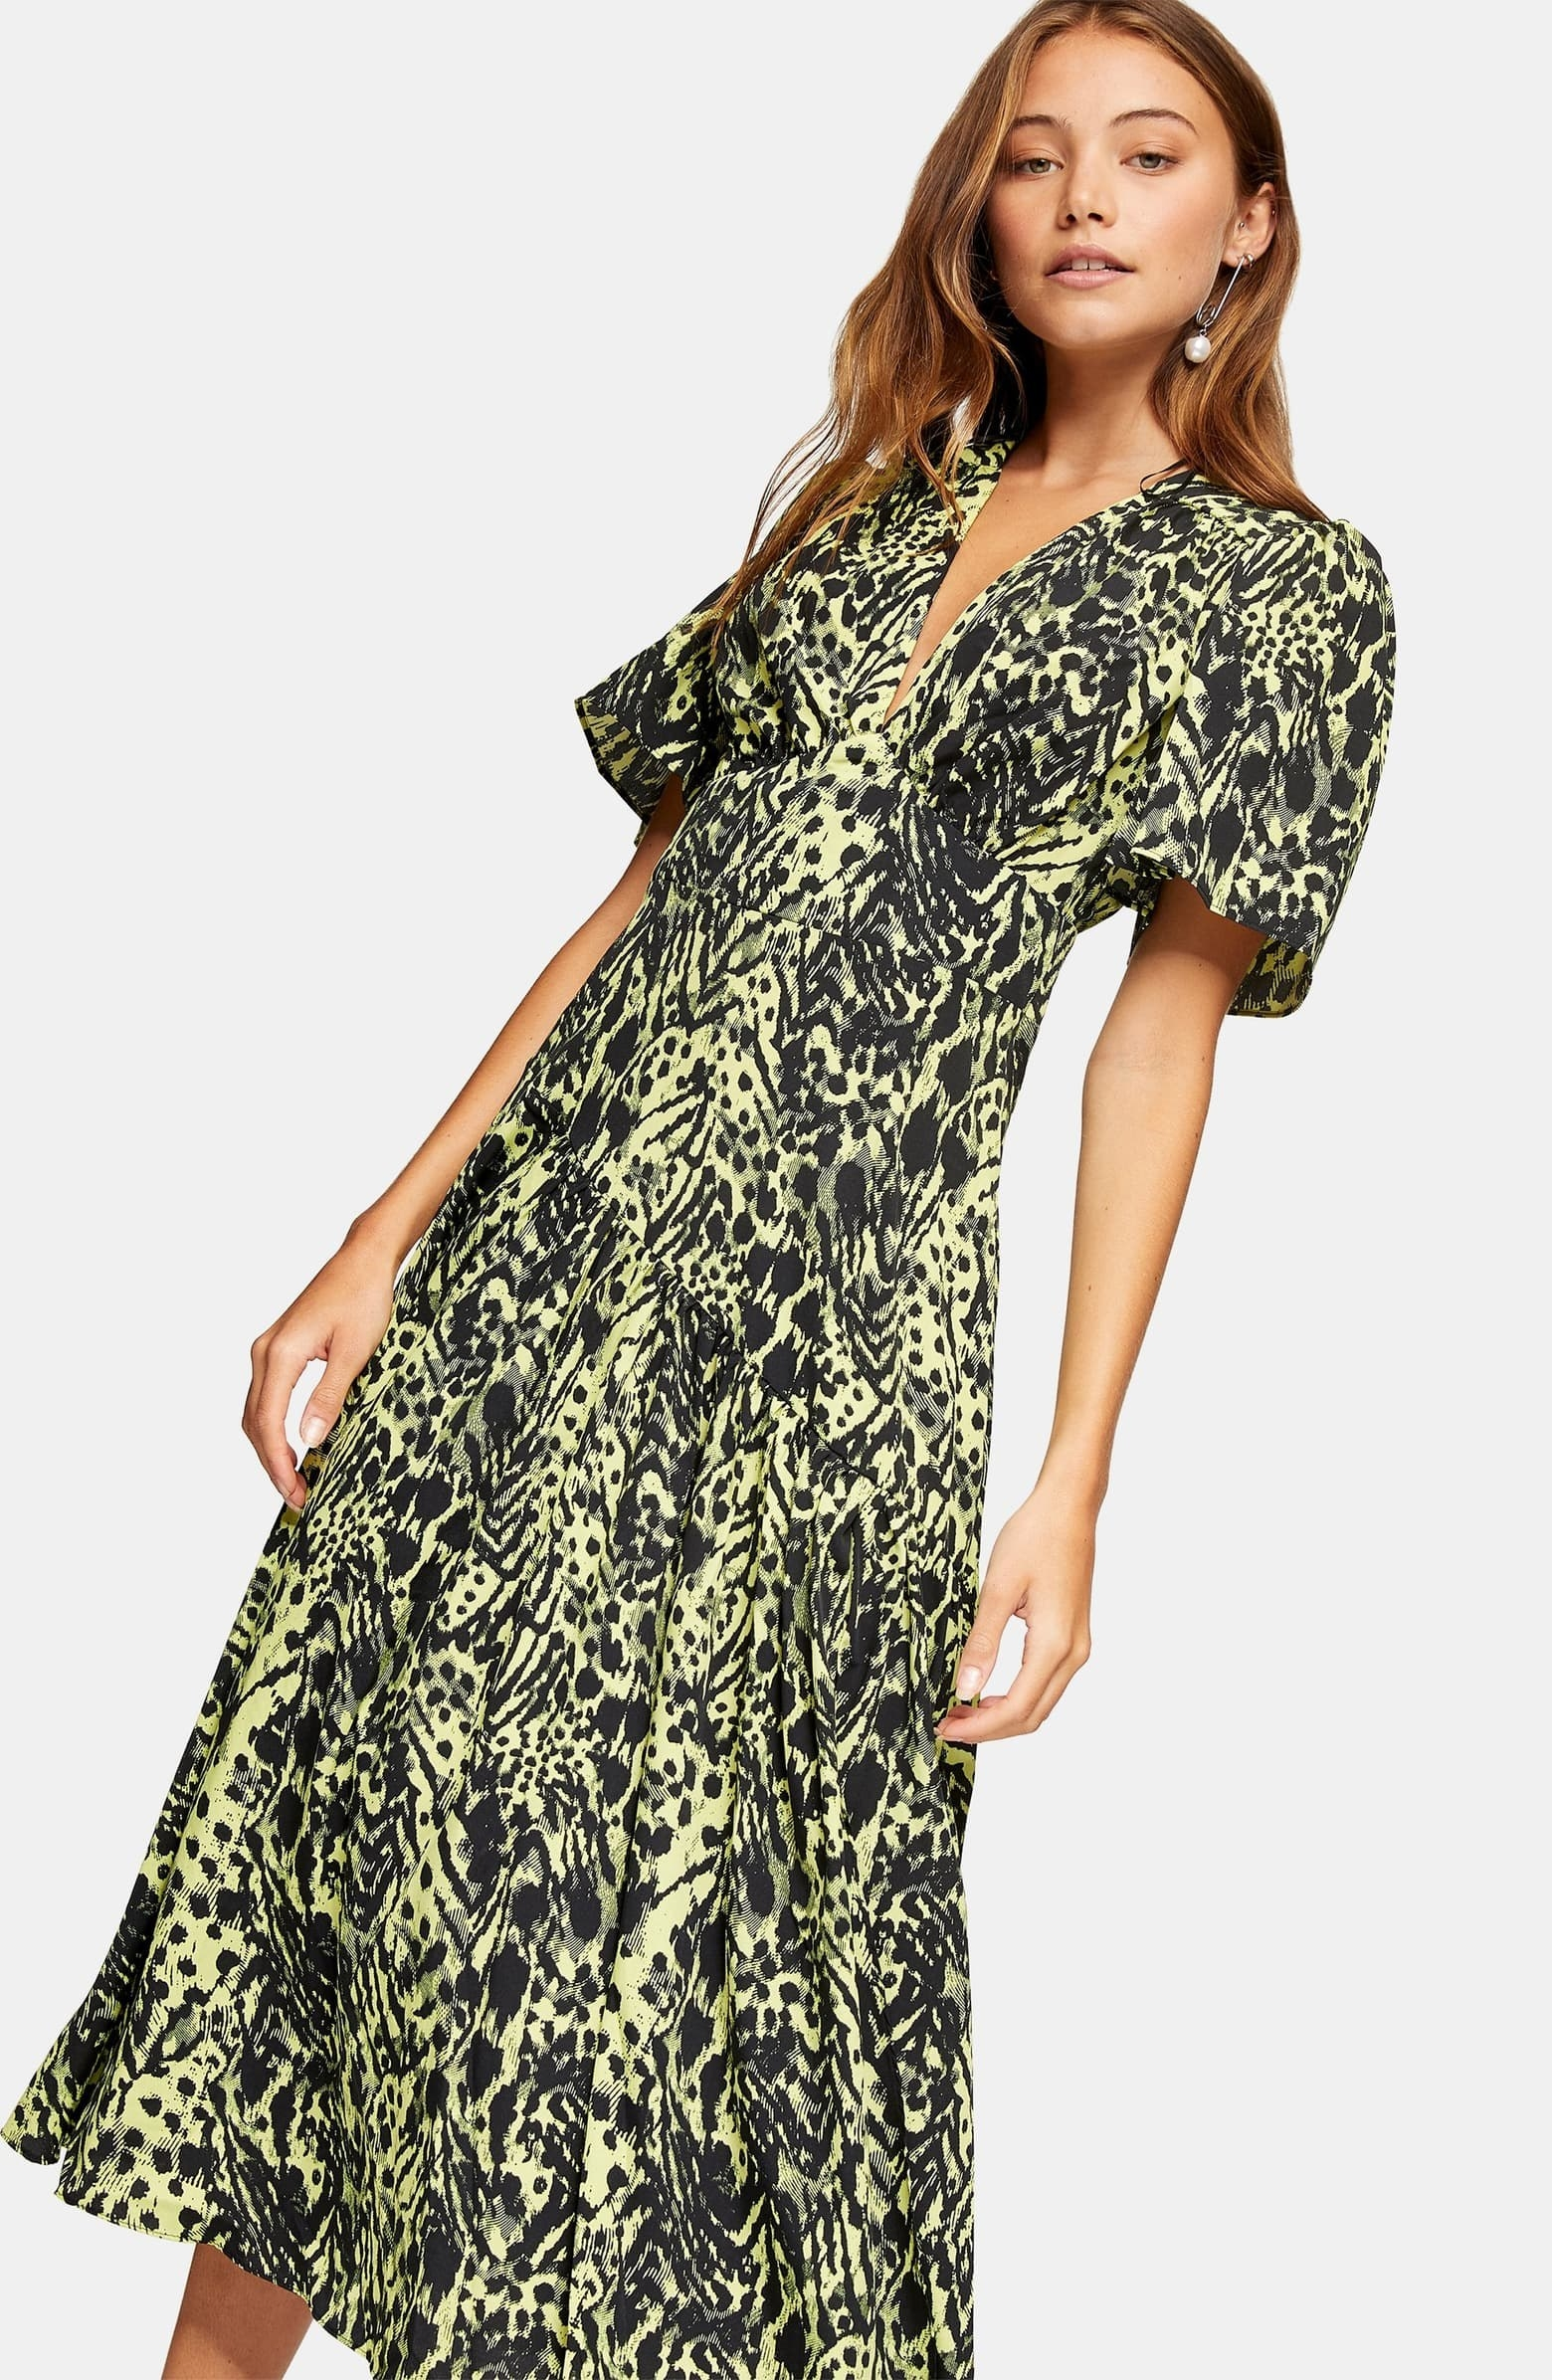 A model wears the bell-sleeved, short-sleeved dress with a v neck that comes in a little at the waist then flows out and down to their shins